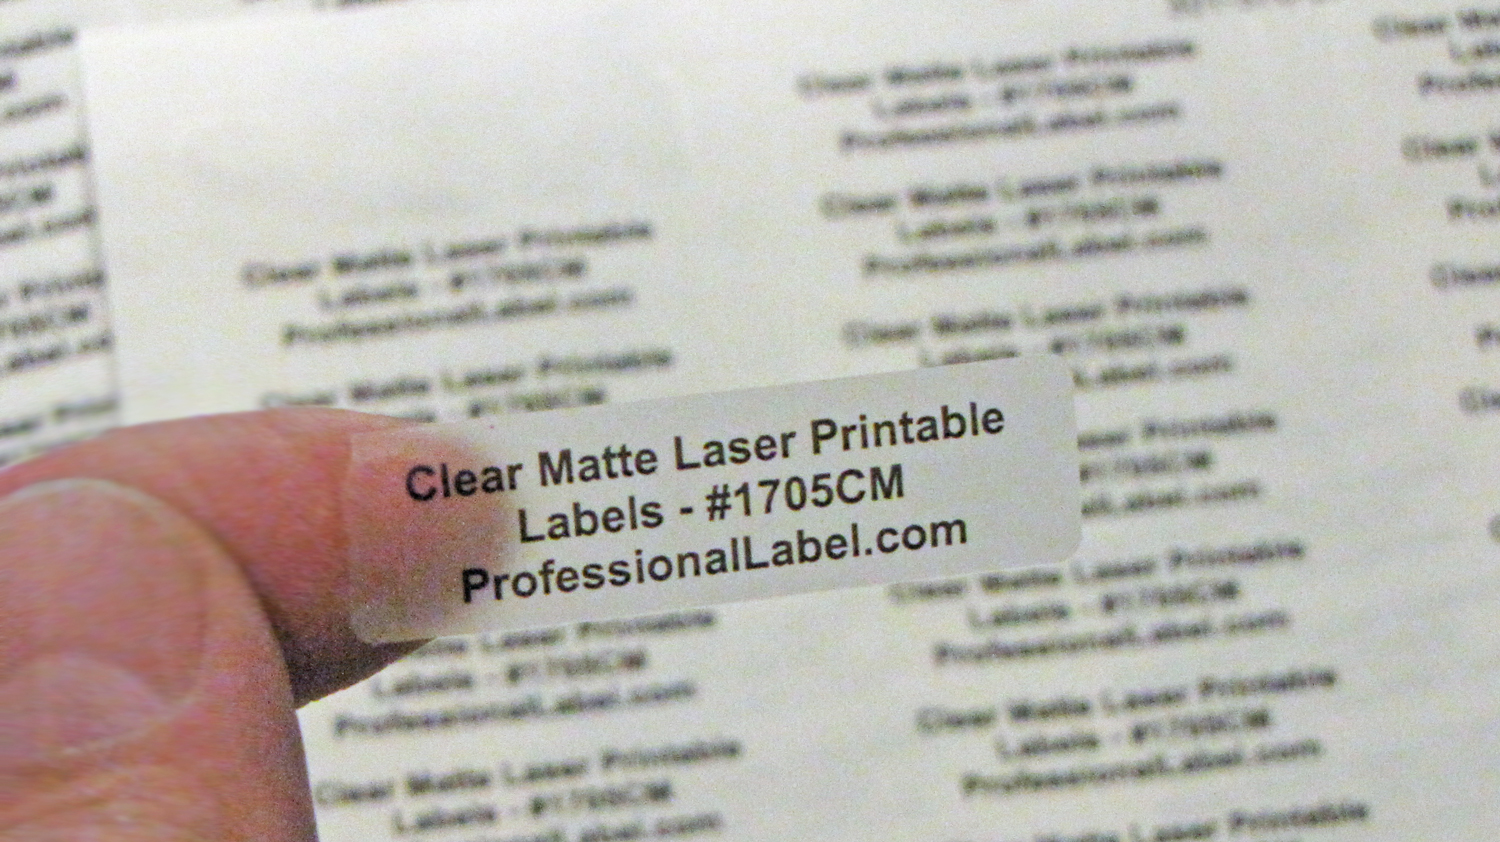 picture relating to Printable Clear Labels called Very clear Matte Laser Printable Labels 1 3/4 x 1/2 inch 50 sheets #1705CM